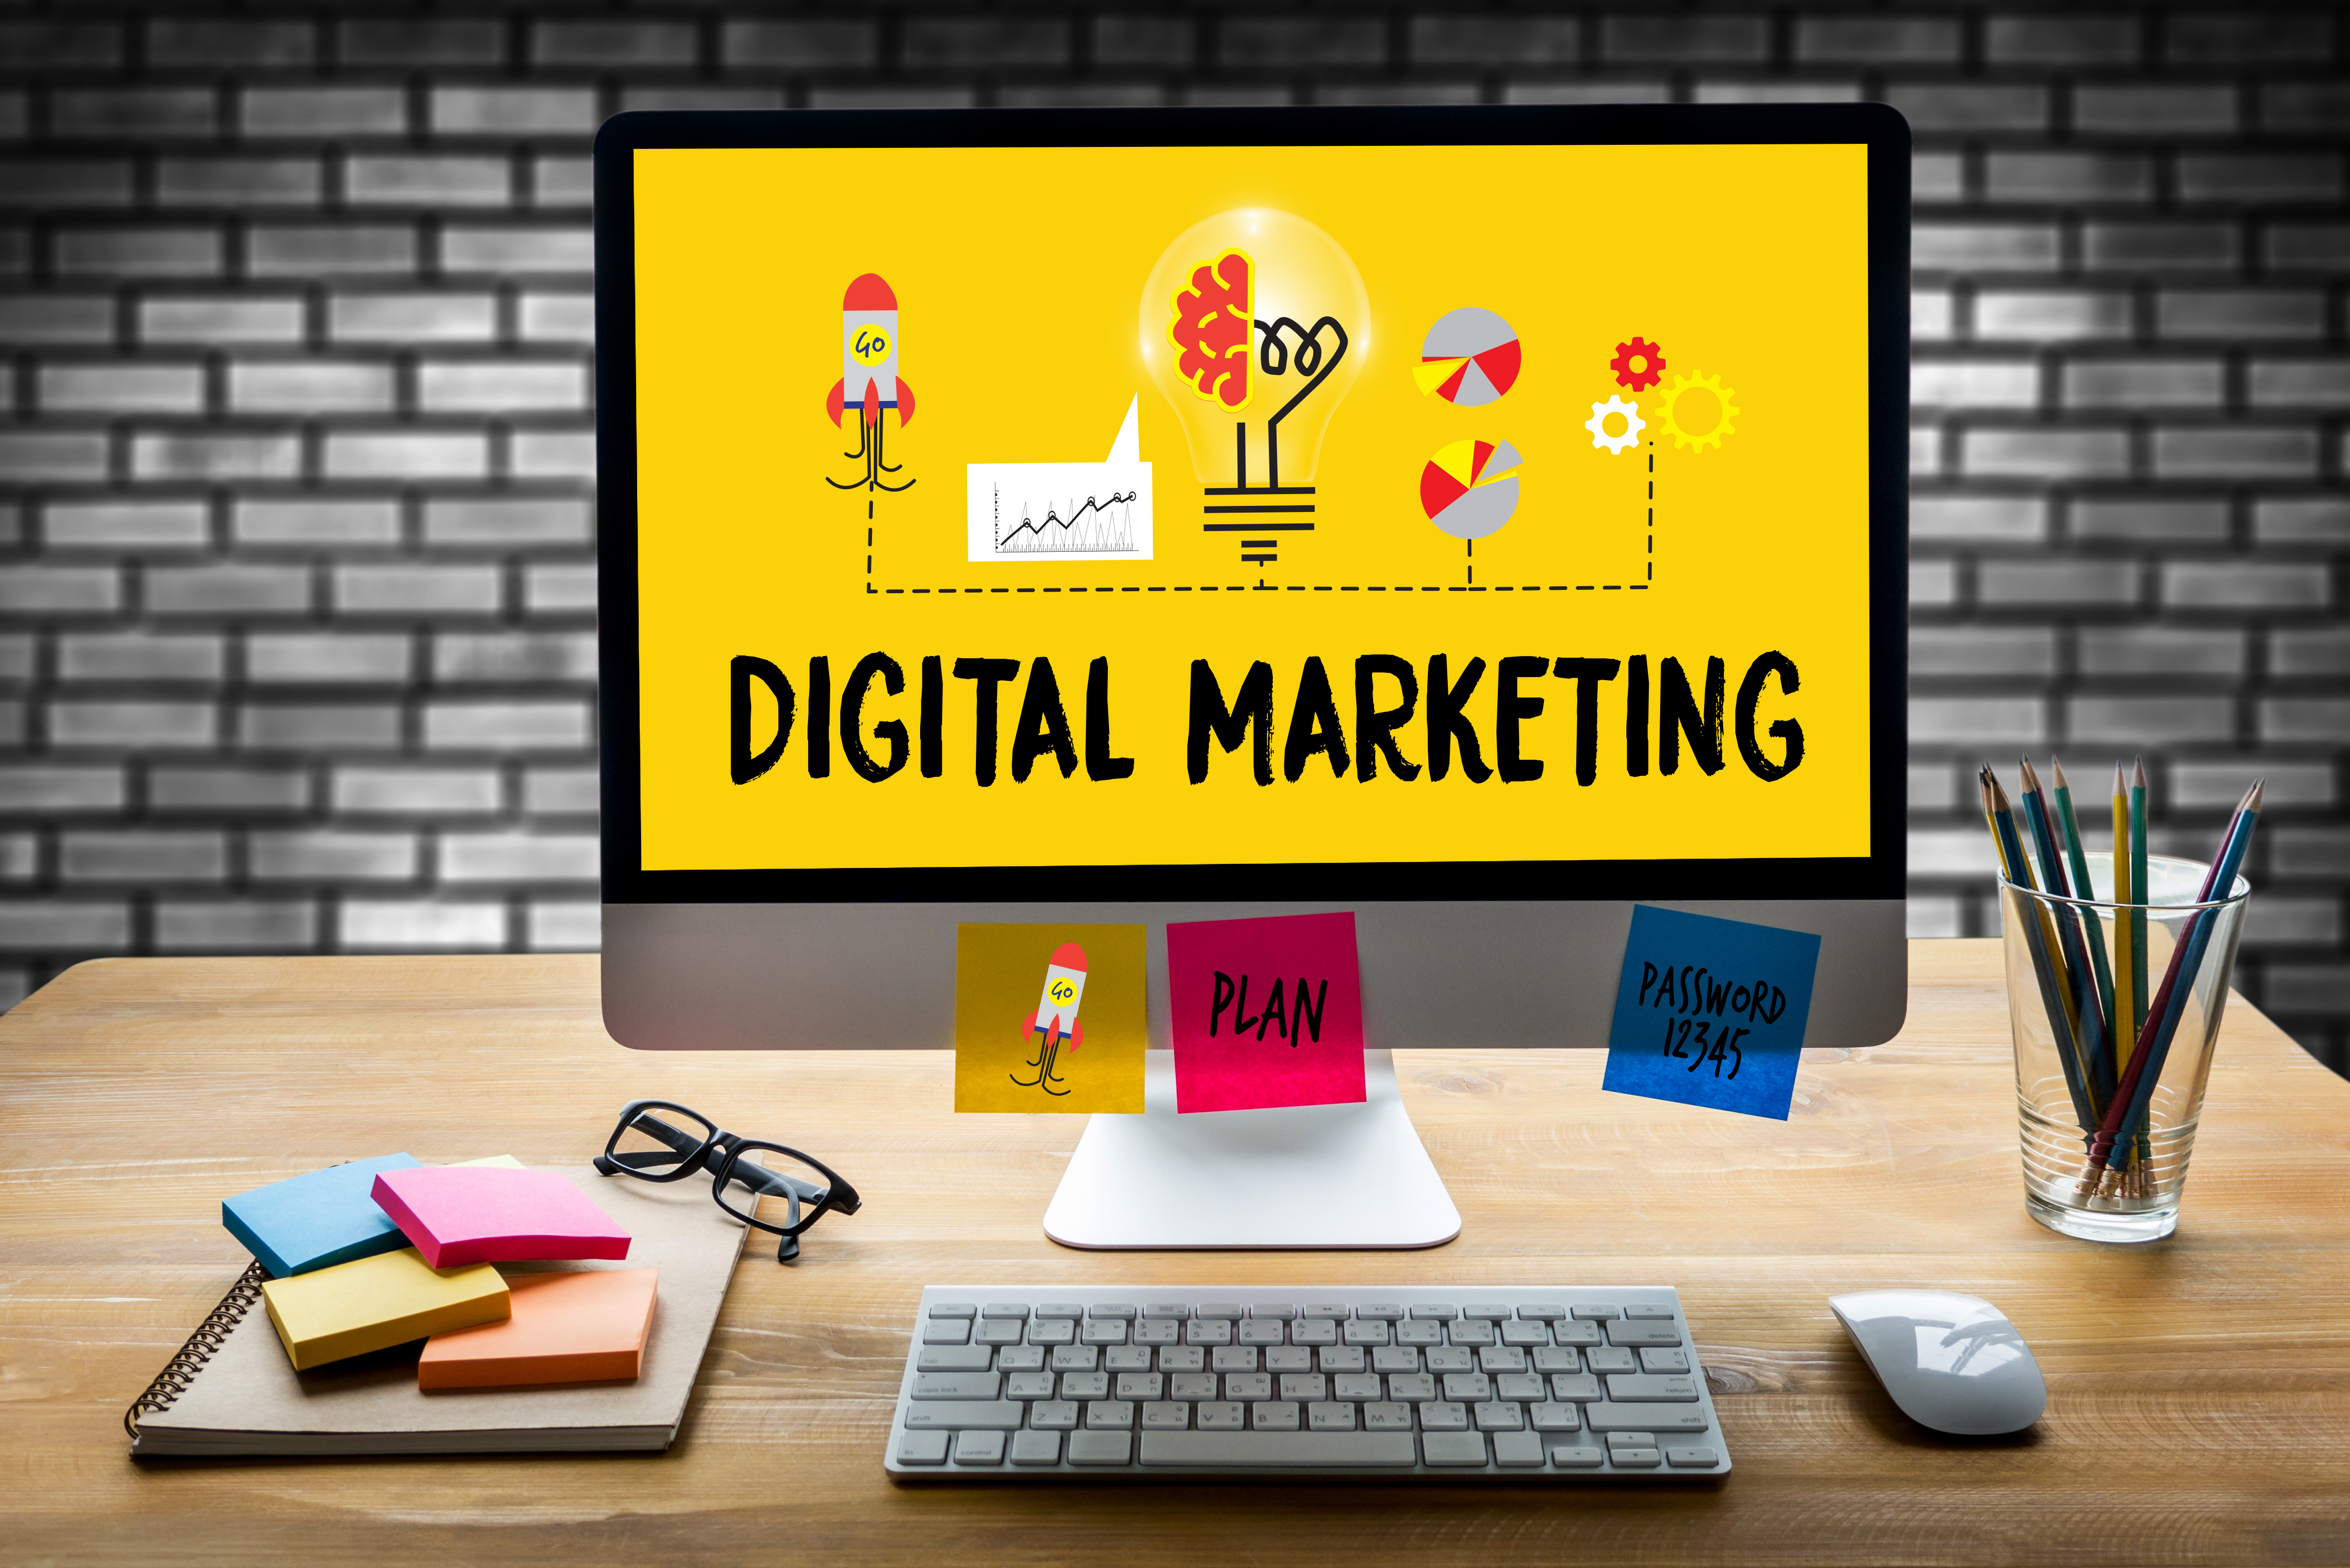 Digital Marketing Consultant – Rajive Dhavan